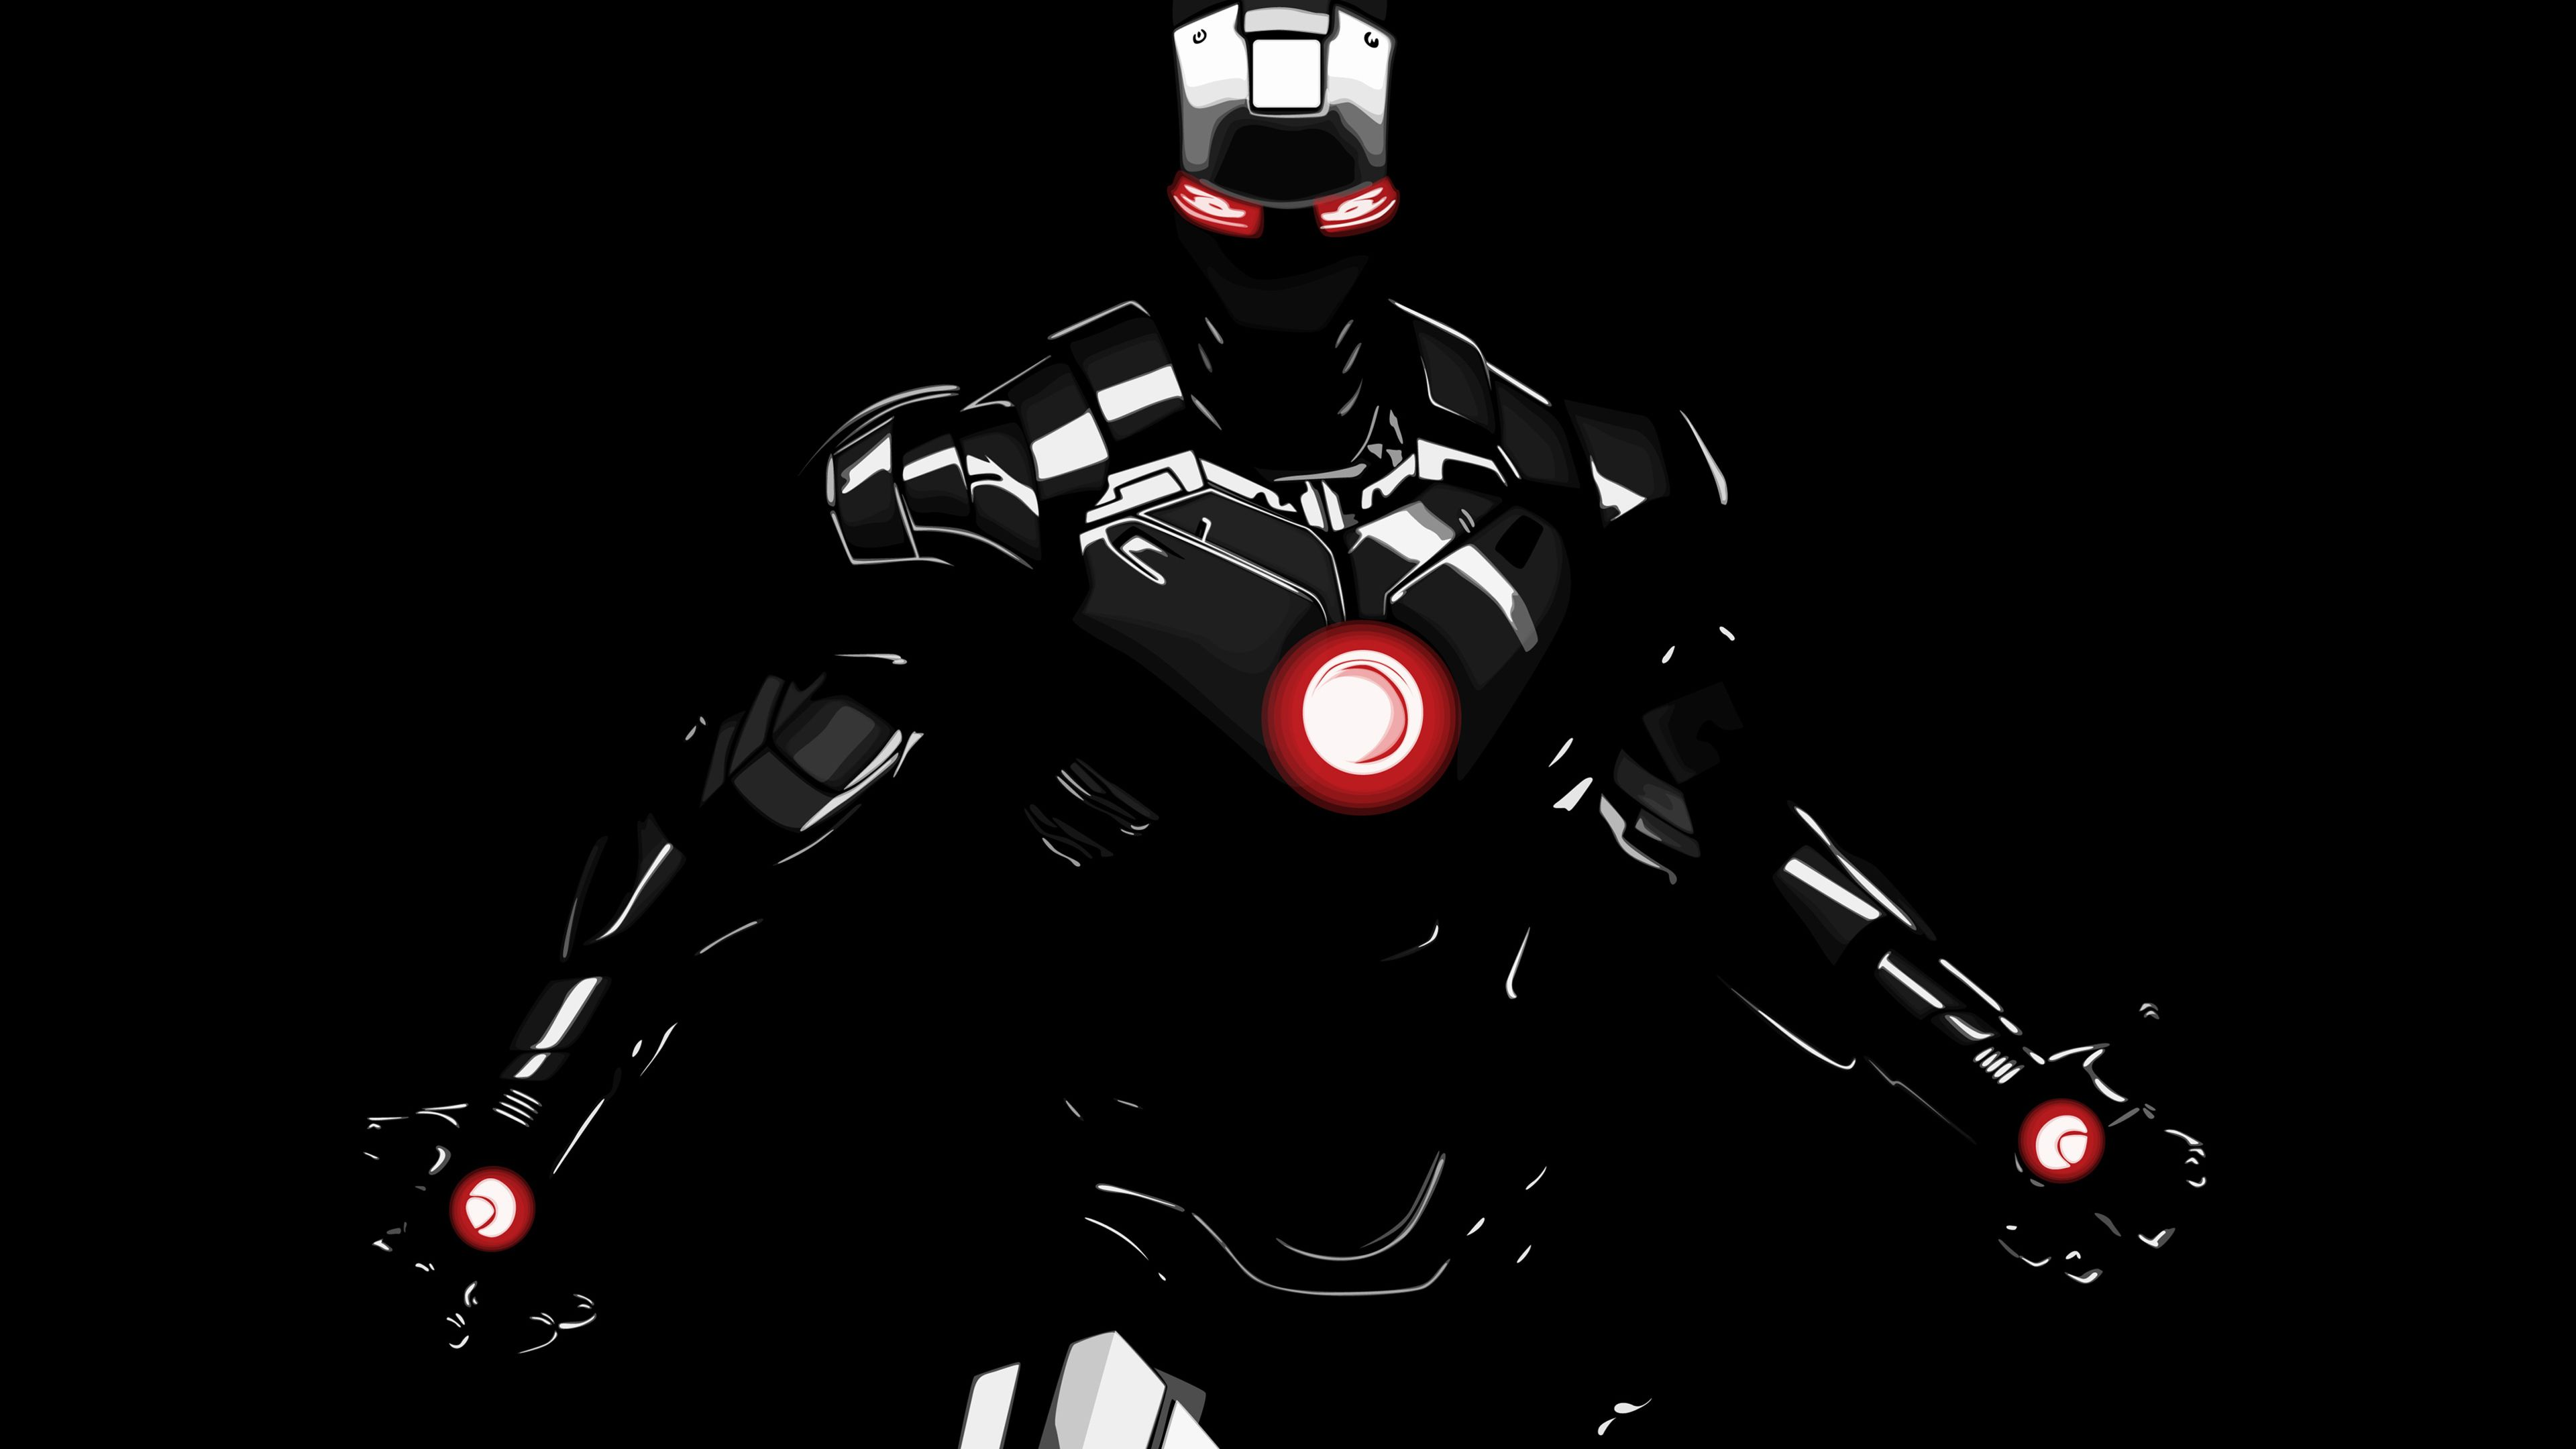 Dark Iron Man 4k Superheroes Wallpapers Iron Man Wallpapers Hd Wallpapers Digital Art Wallpapers Behance W Iron Man Wallpaper Iron Man Photos Man Wallpaper